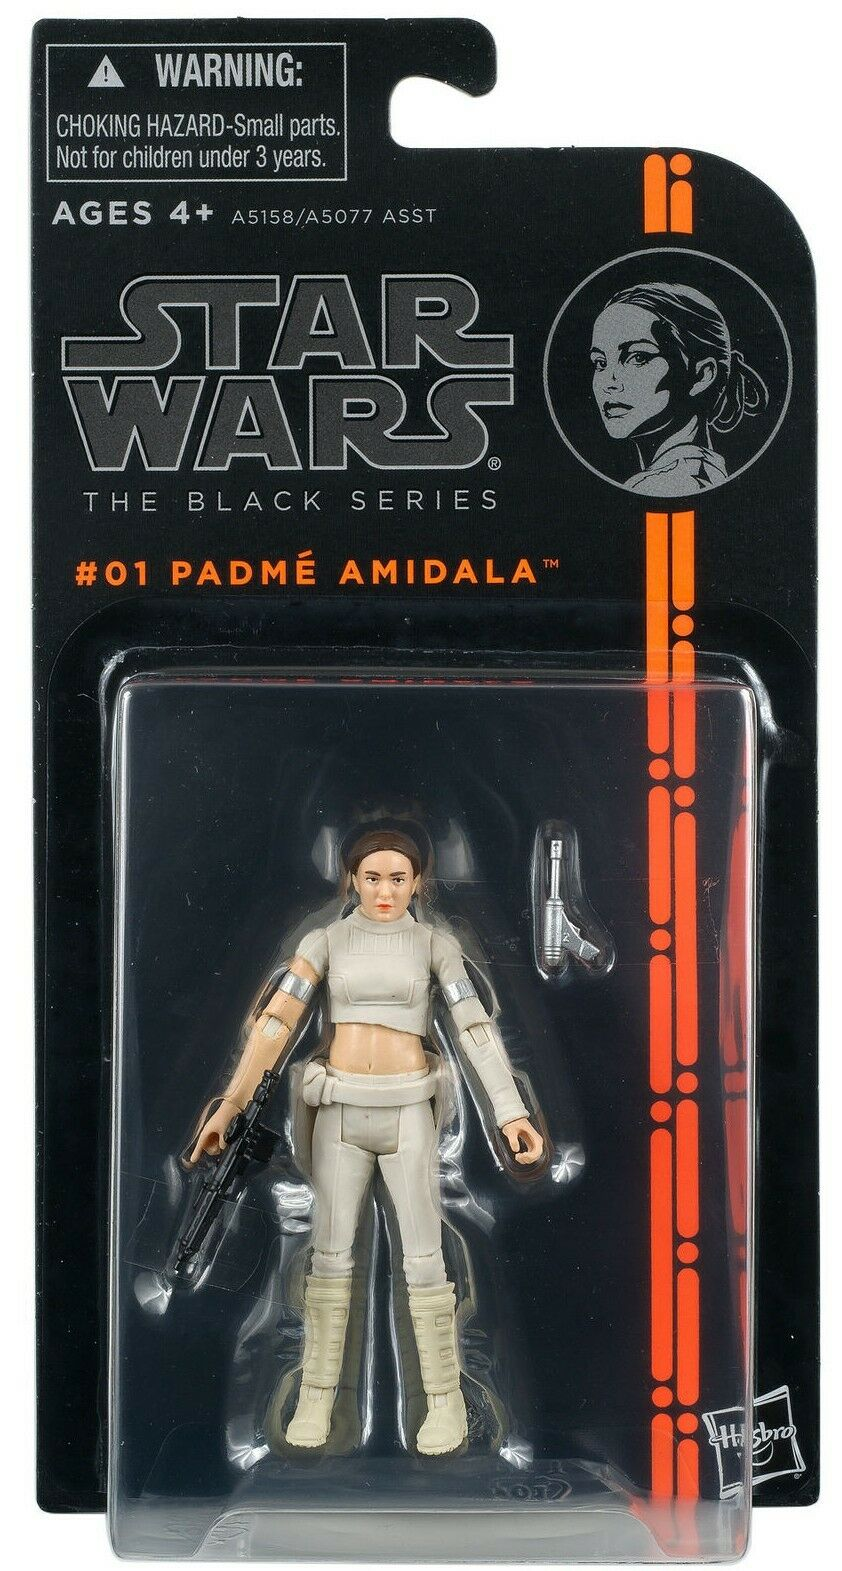 2013 Star Wars The Black Series #01: PADME AMIDALA Sealed MOC